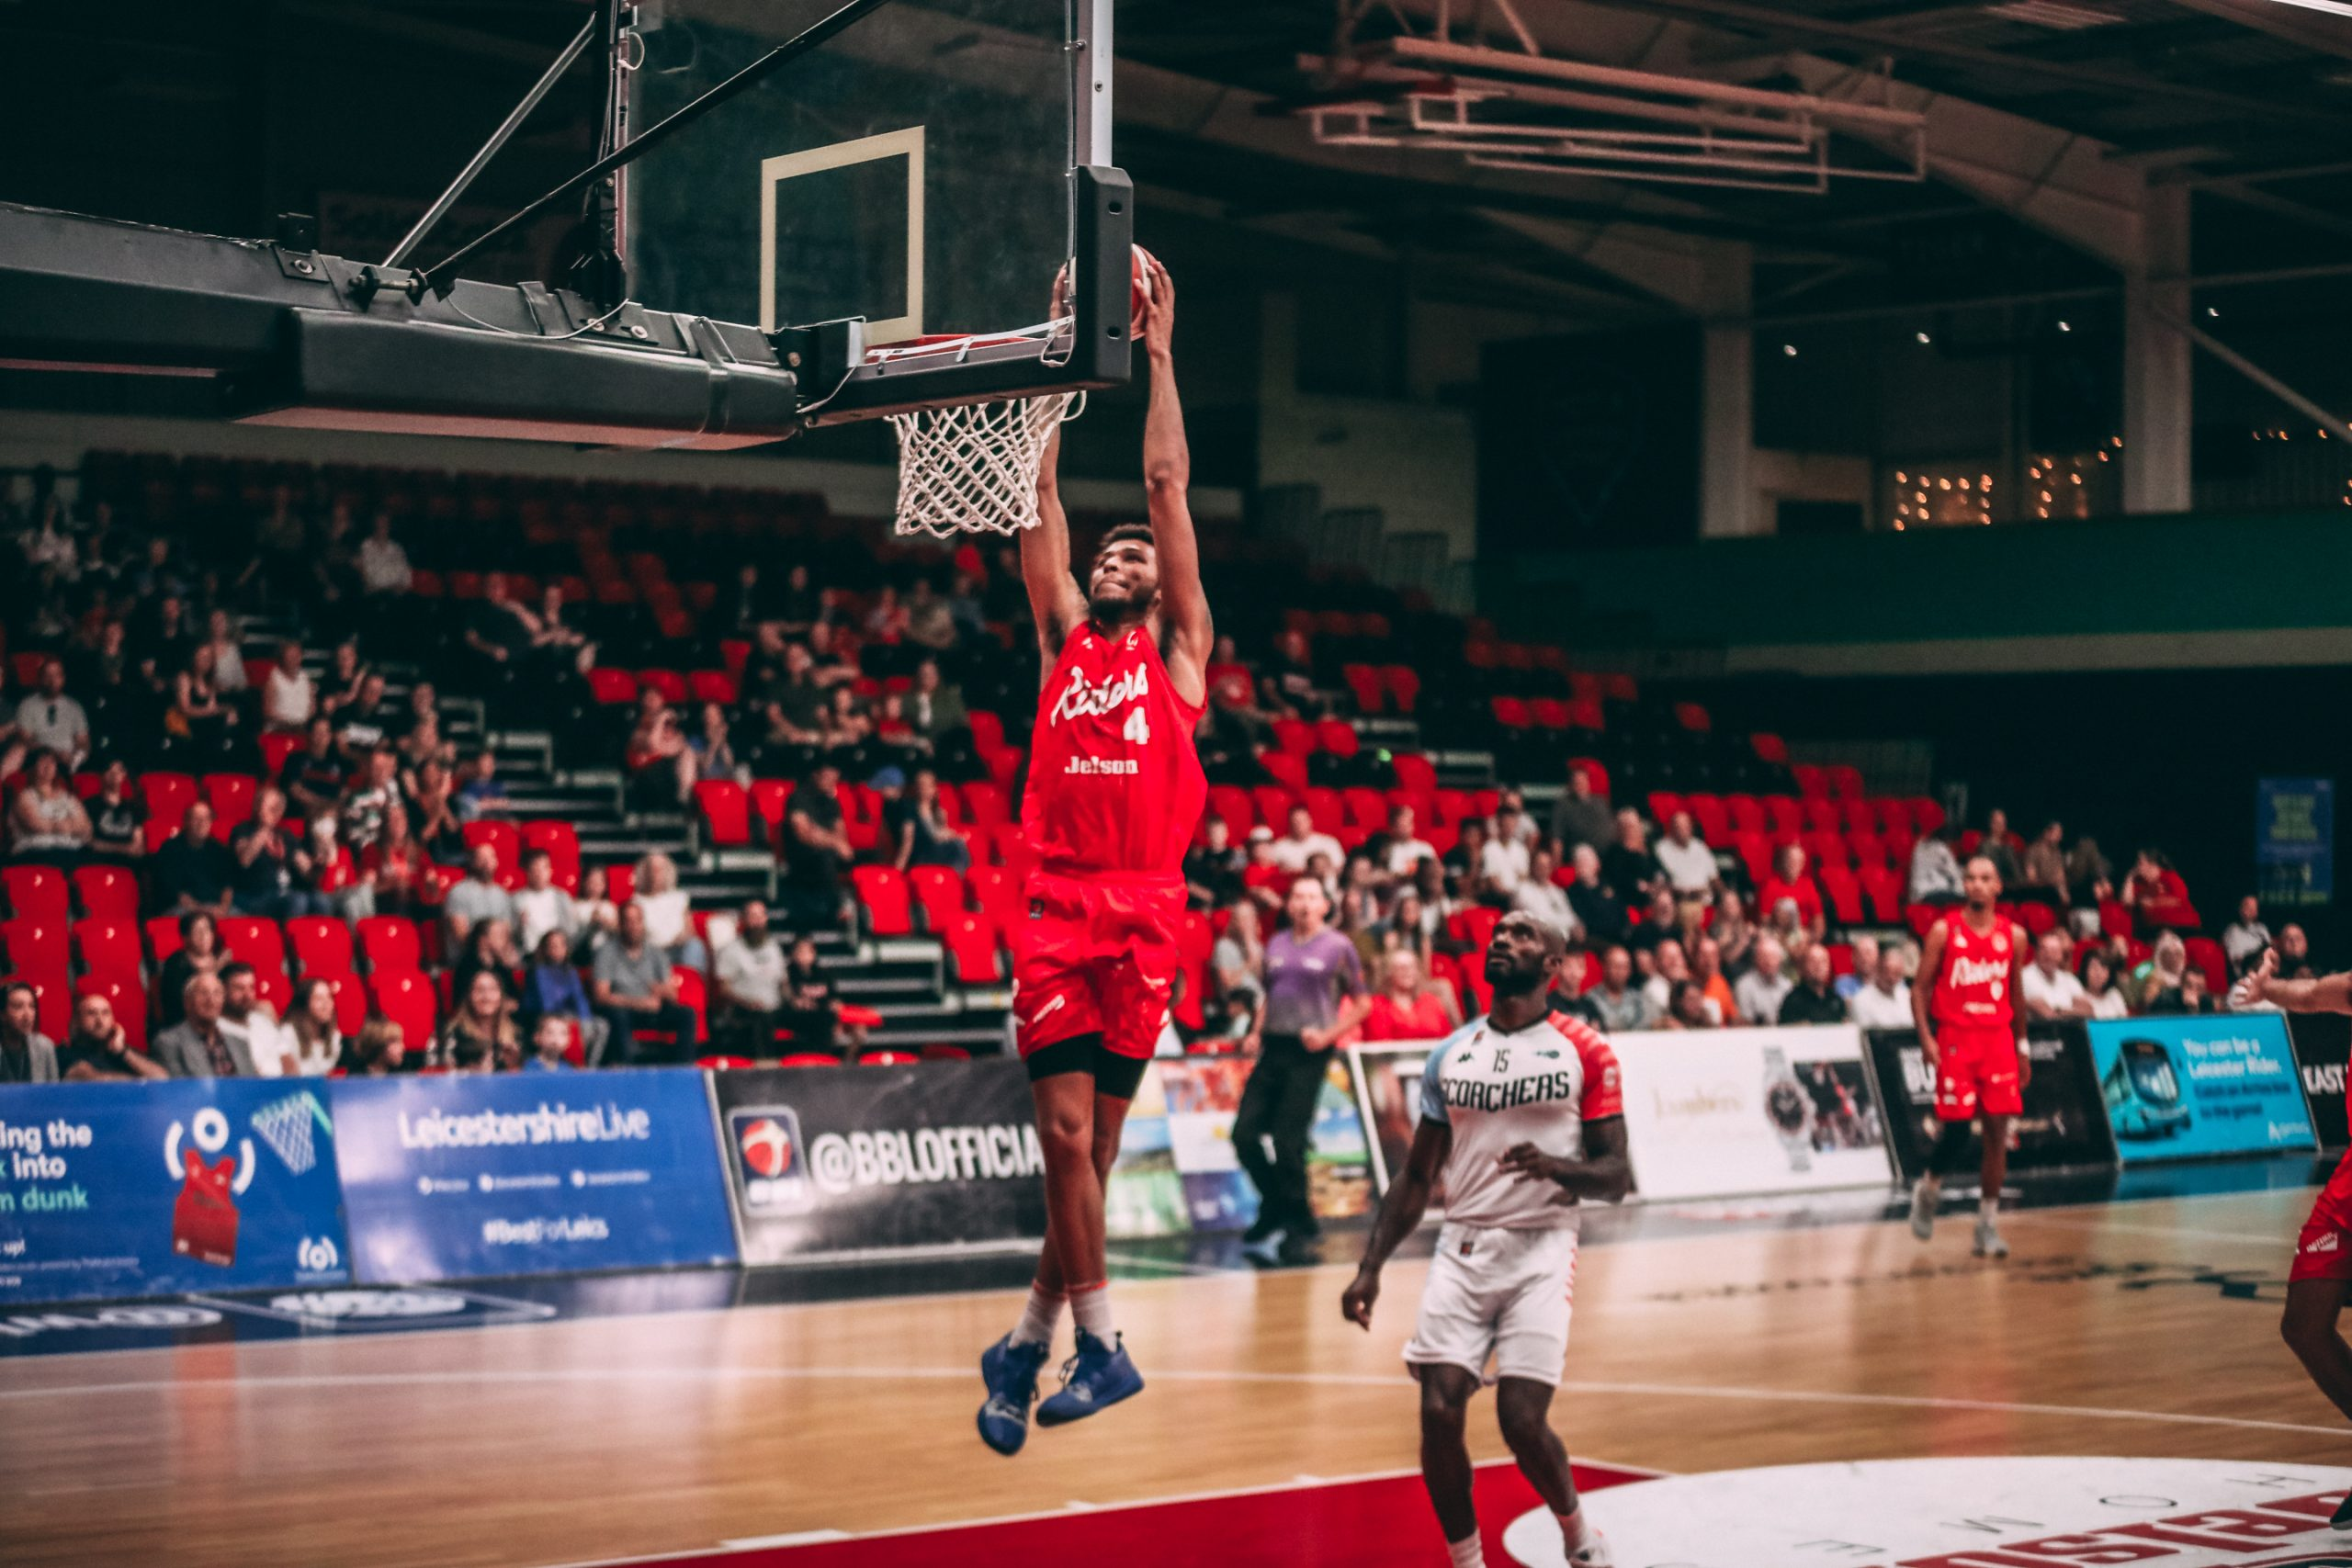 Riders bounce back with win over Scorchers